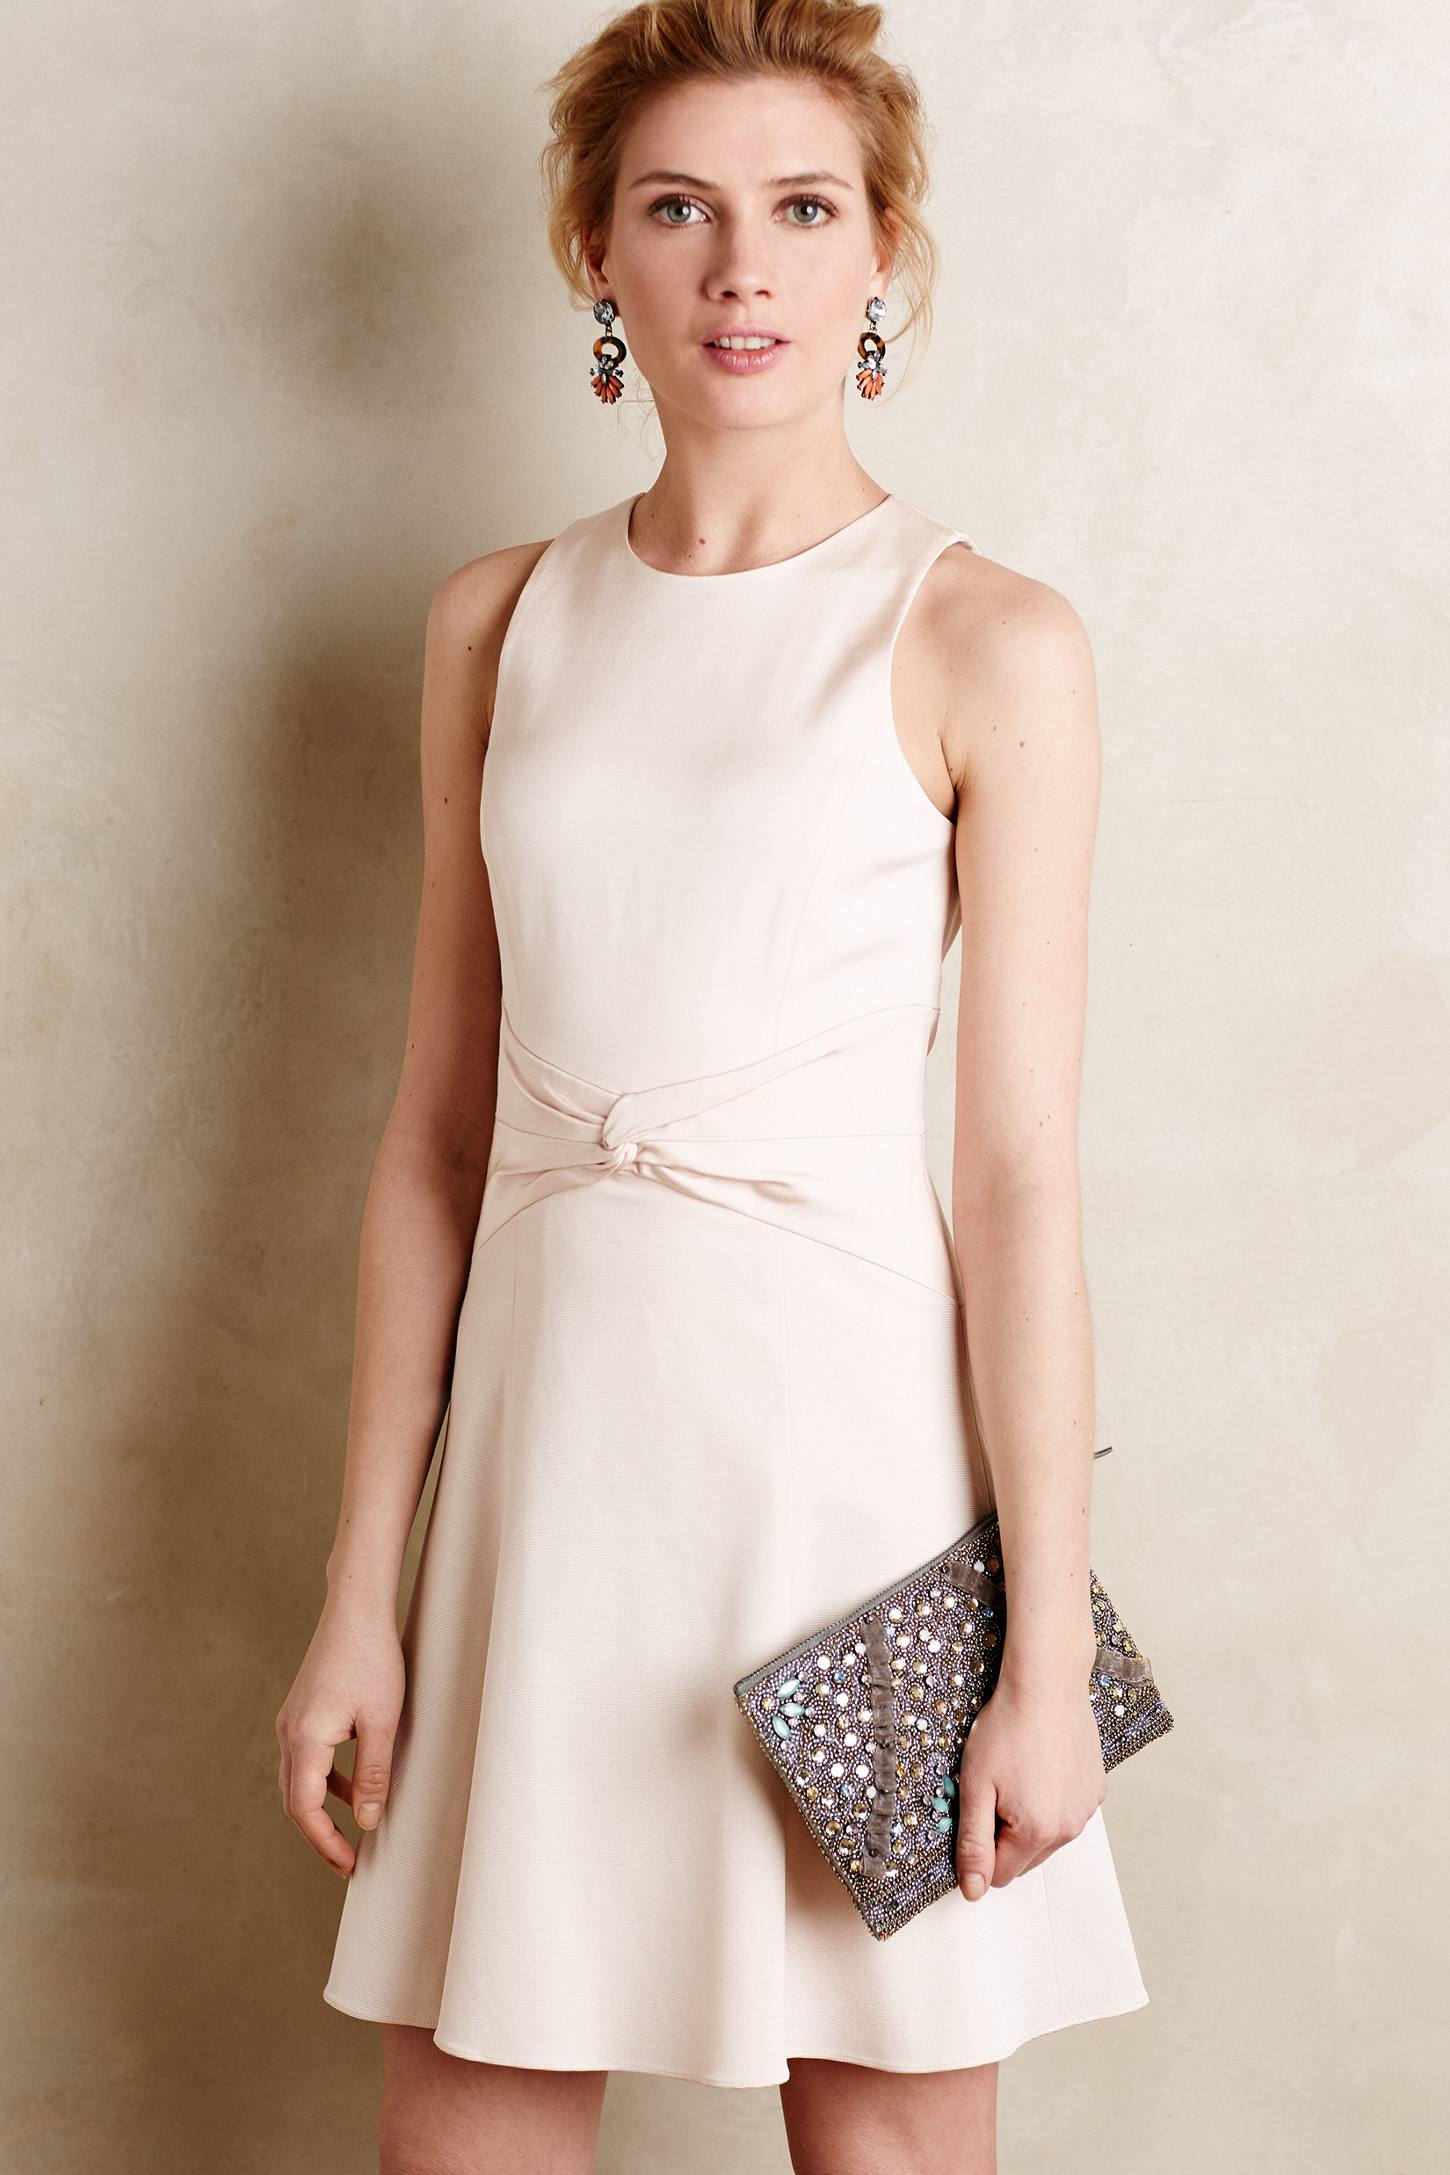 Knot waist dress from Anthropologie